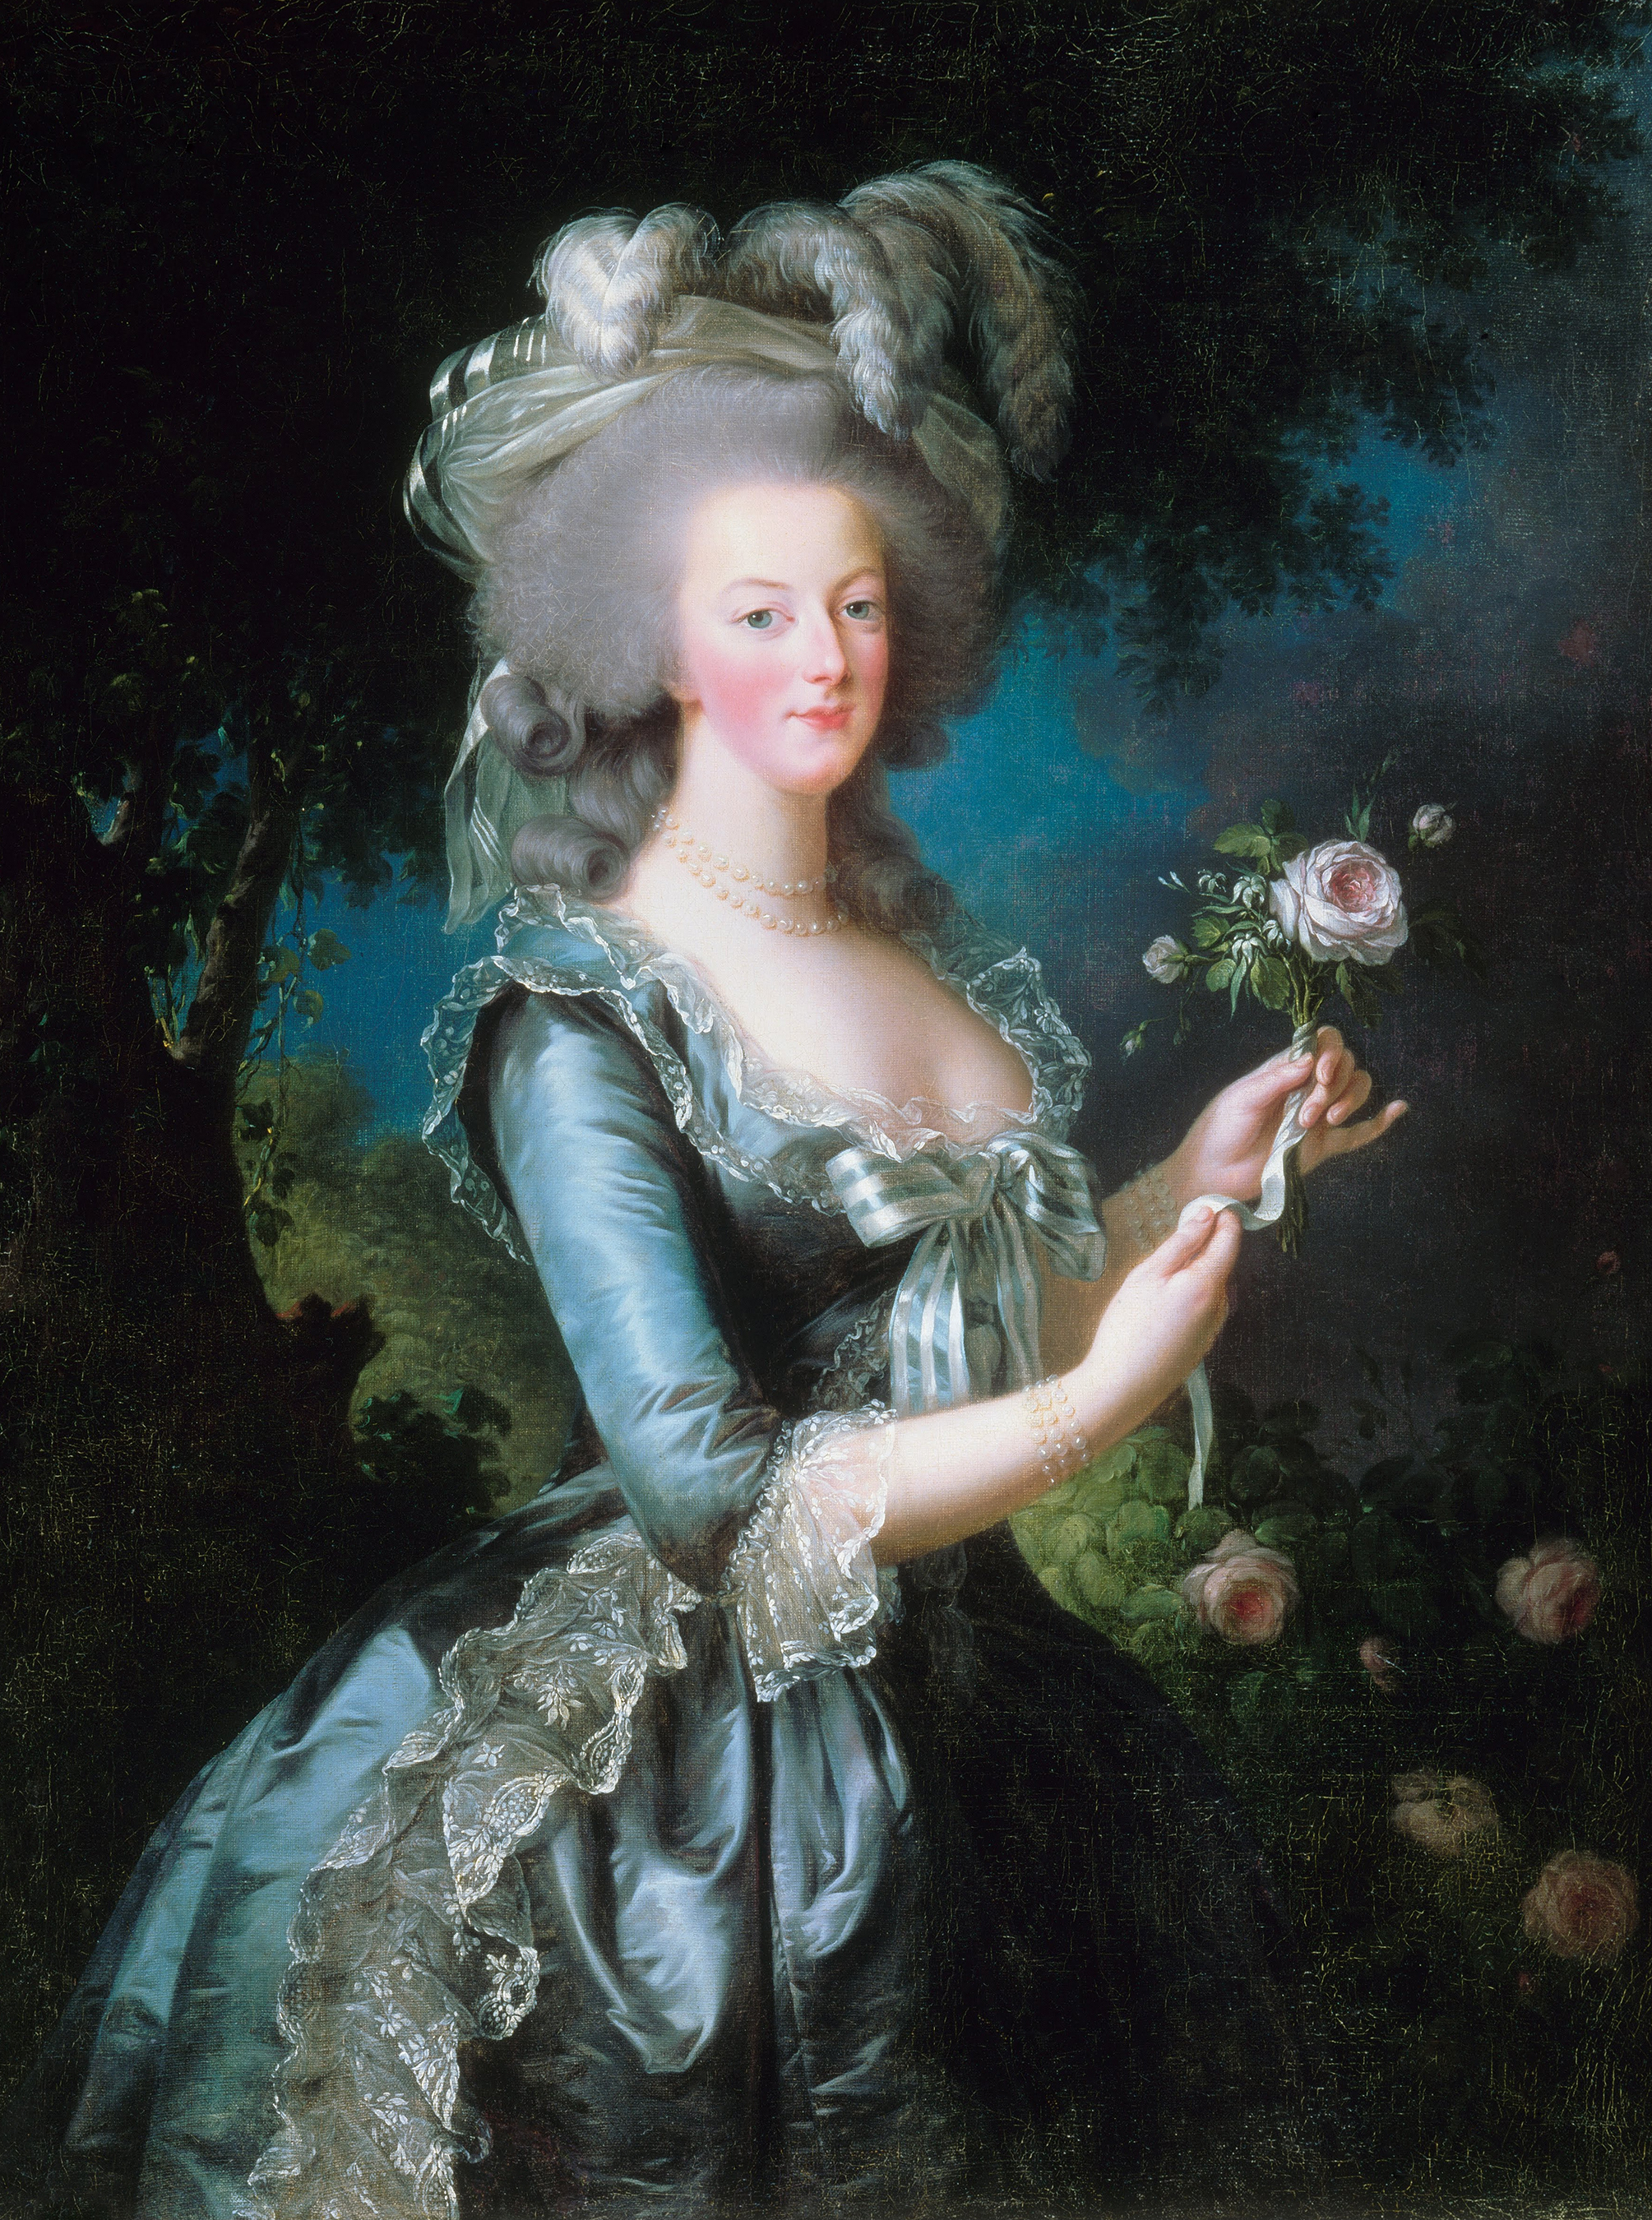 Portrait of Marie Antoinette (1755-1793), Queen consort of France (1774-1791), Queen consort of the French (1791-1792), Dauphine of France (1770-1774), 1783 | Portraits of Kings